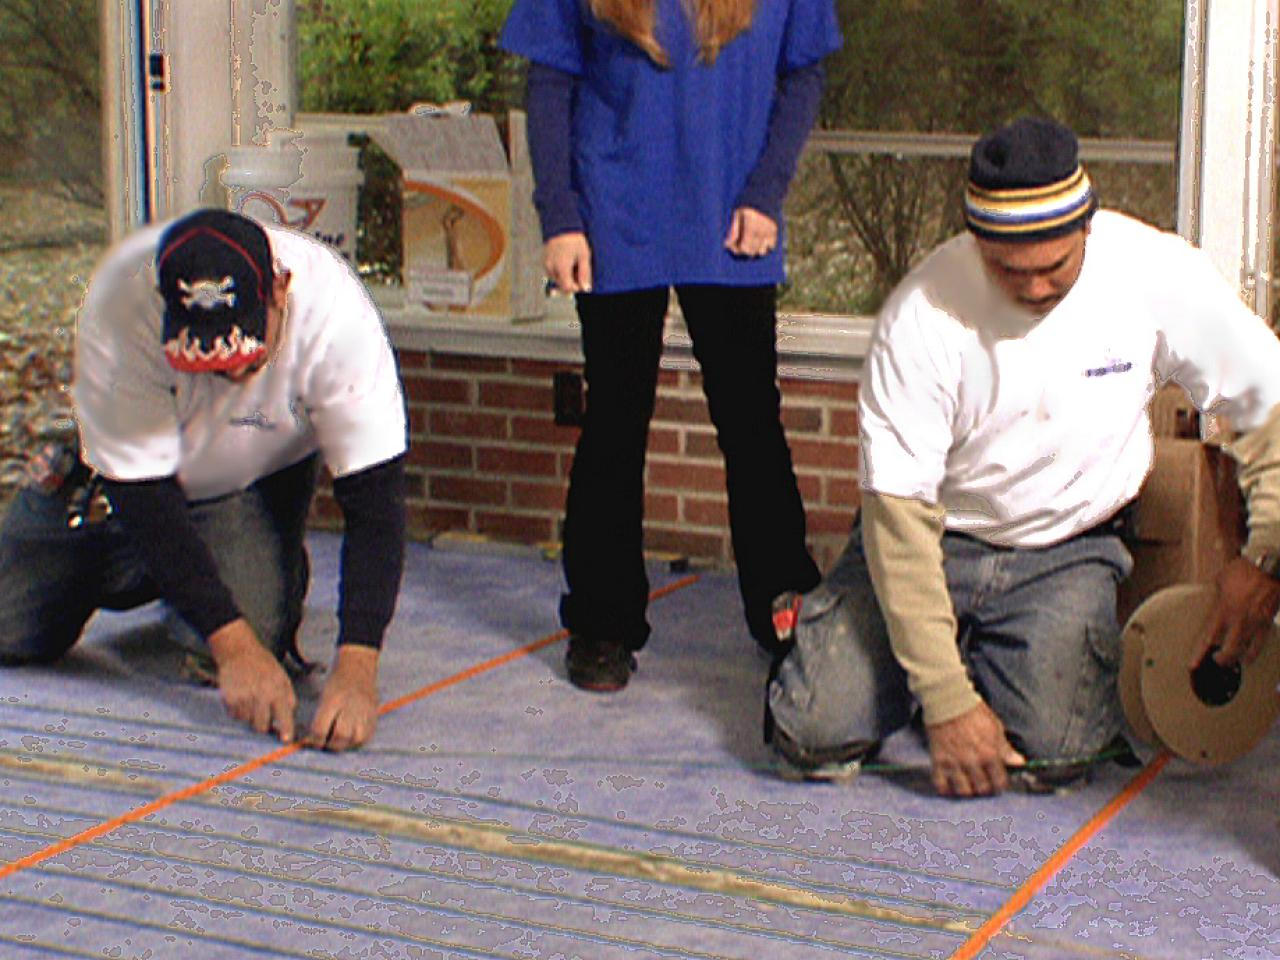 How to install a heated tile floor how tos diy dmam113cables dailygadgetfo Image collections